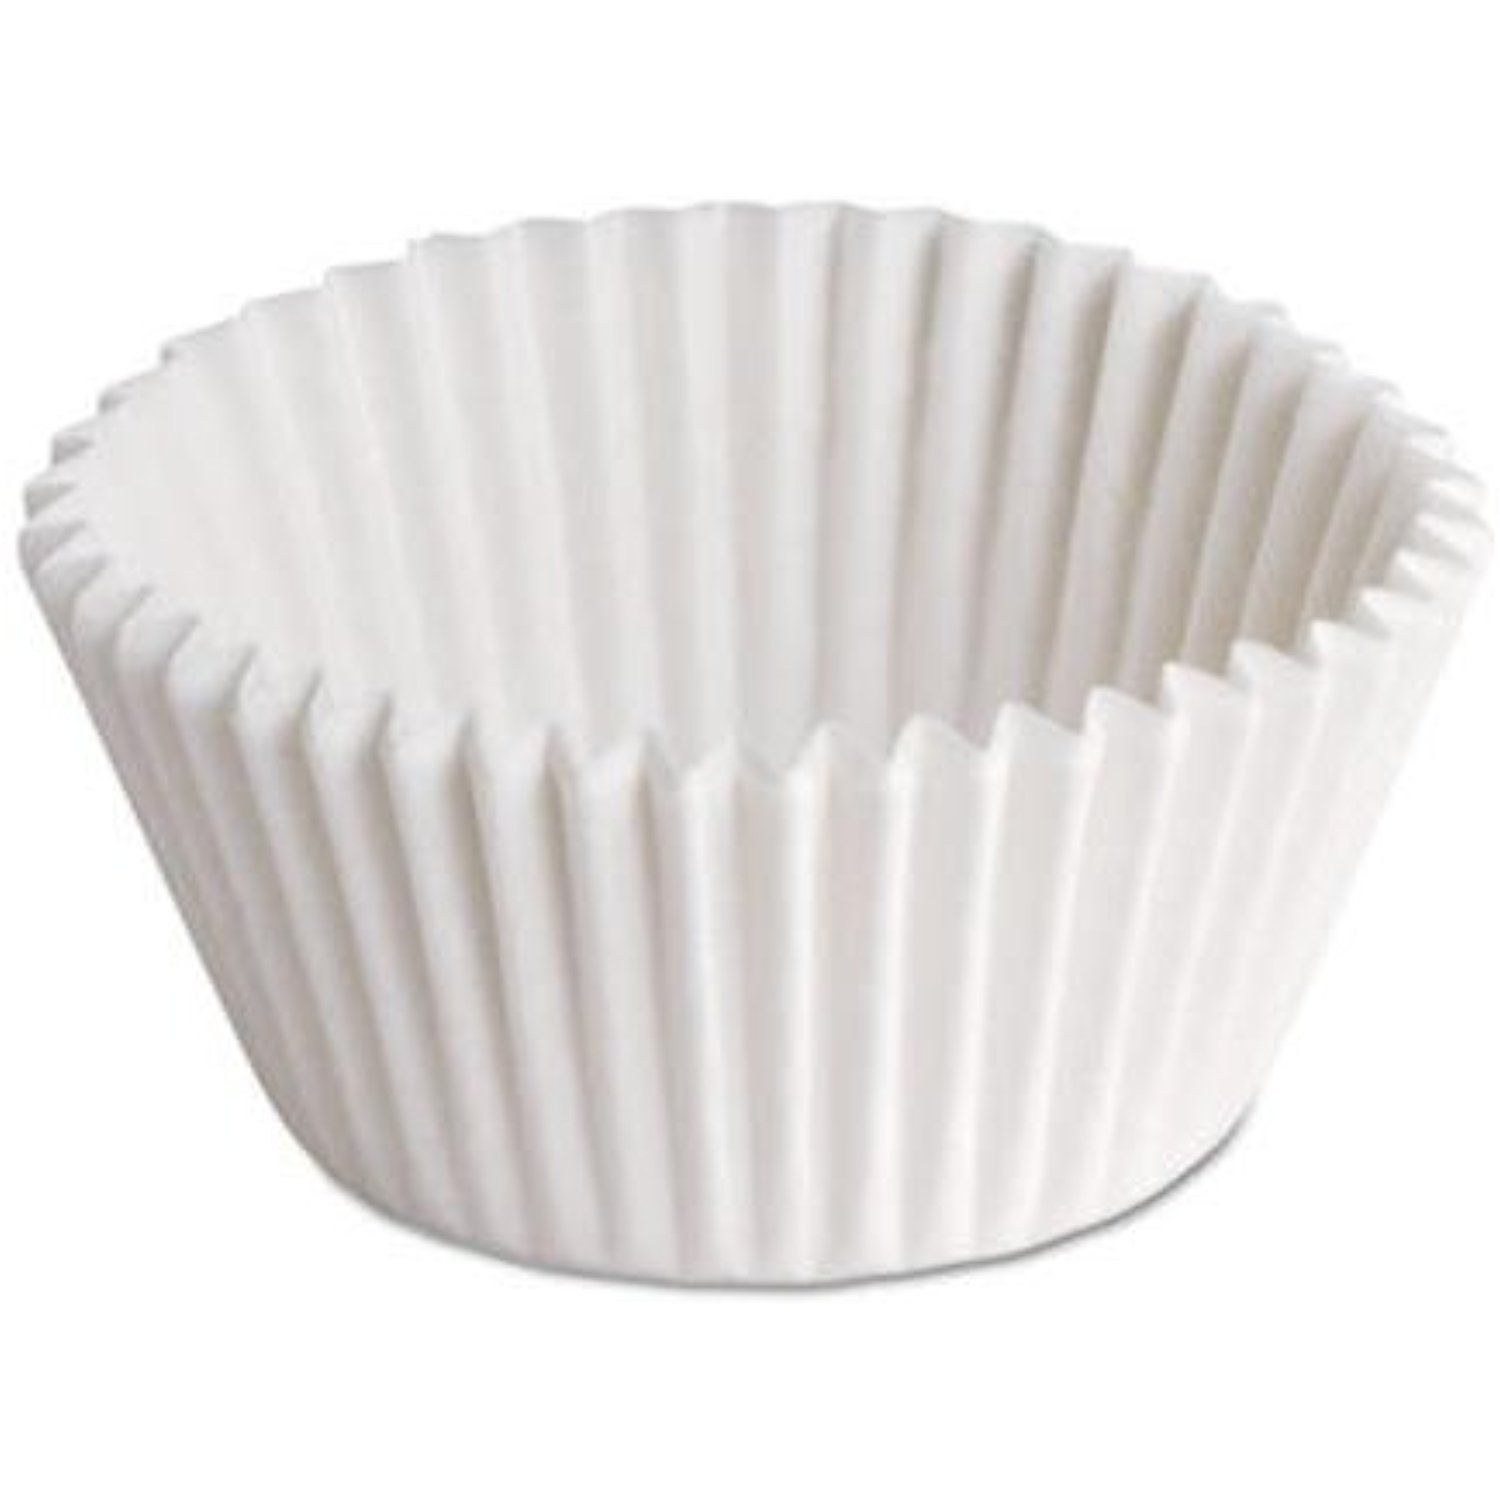 Wilton 36 Count Cupcakes are My Cocktails Baking Cups